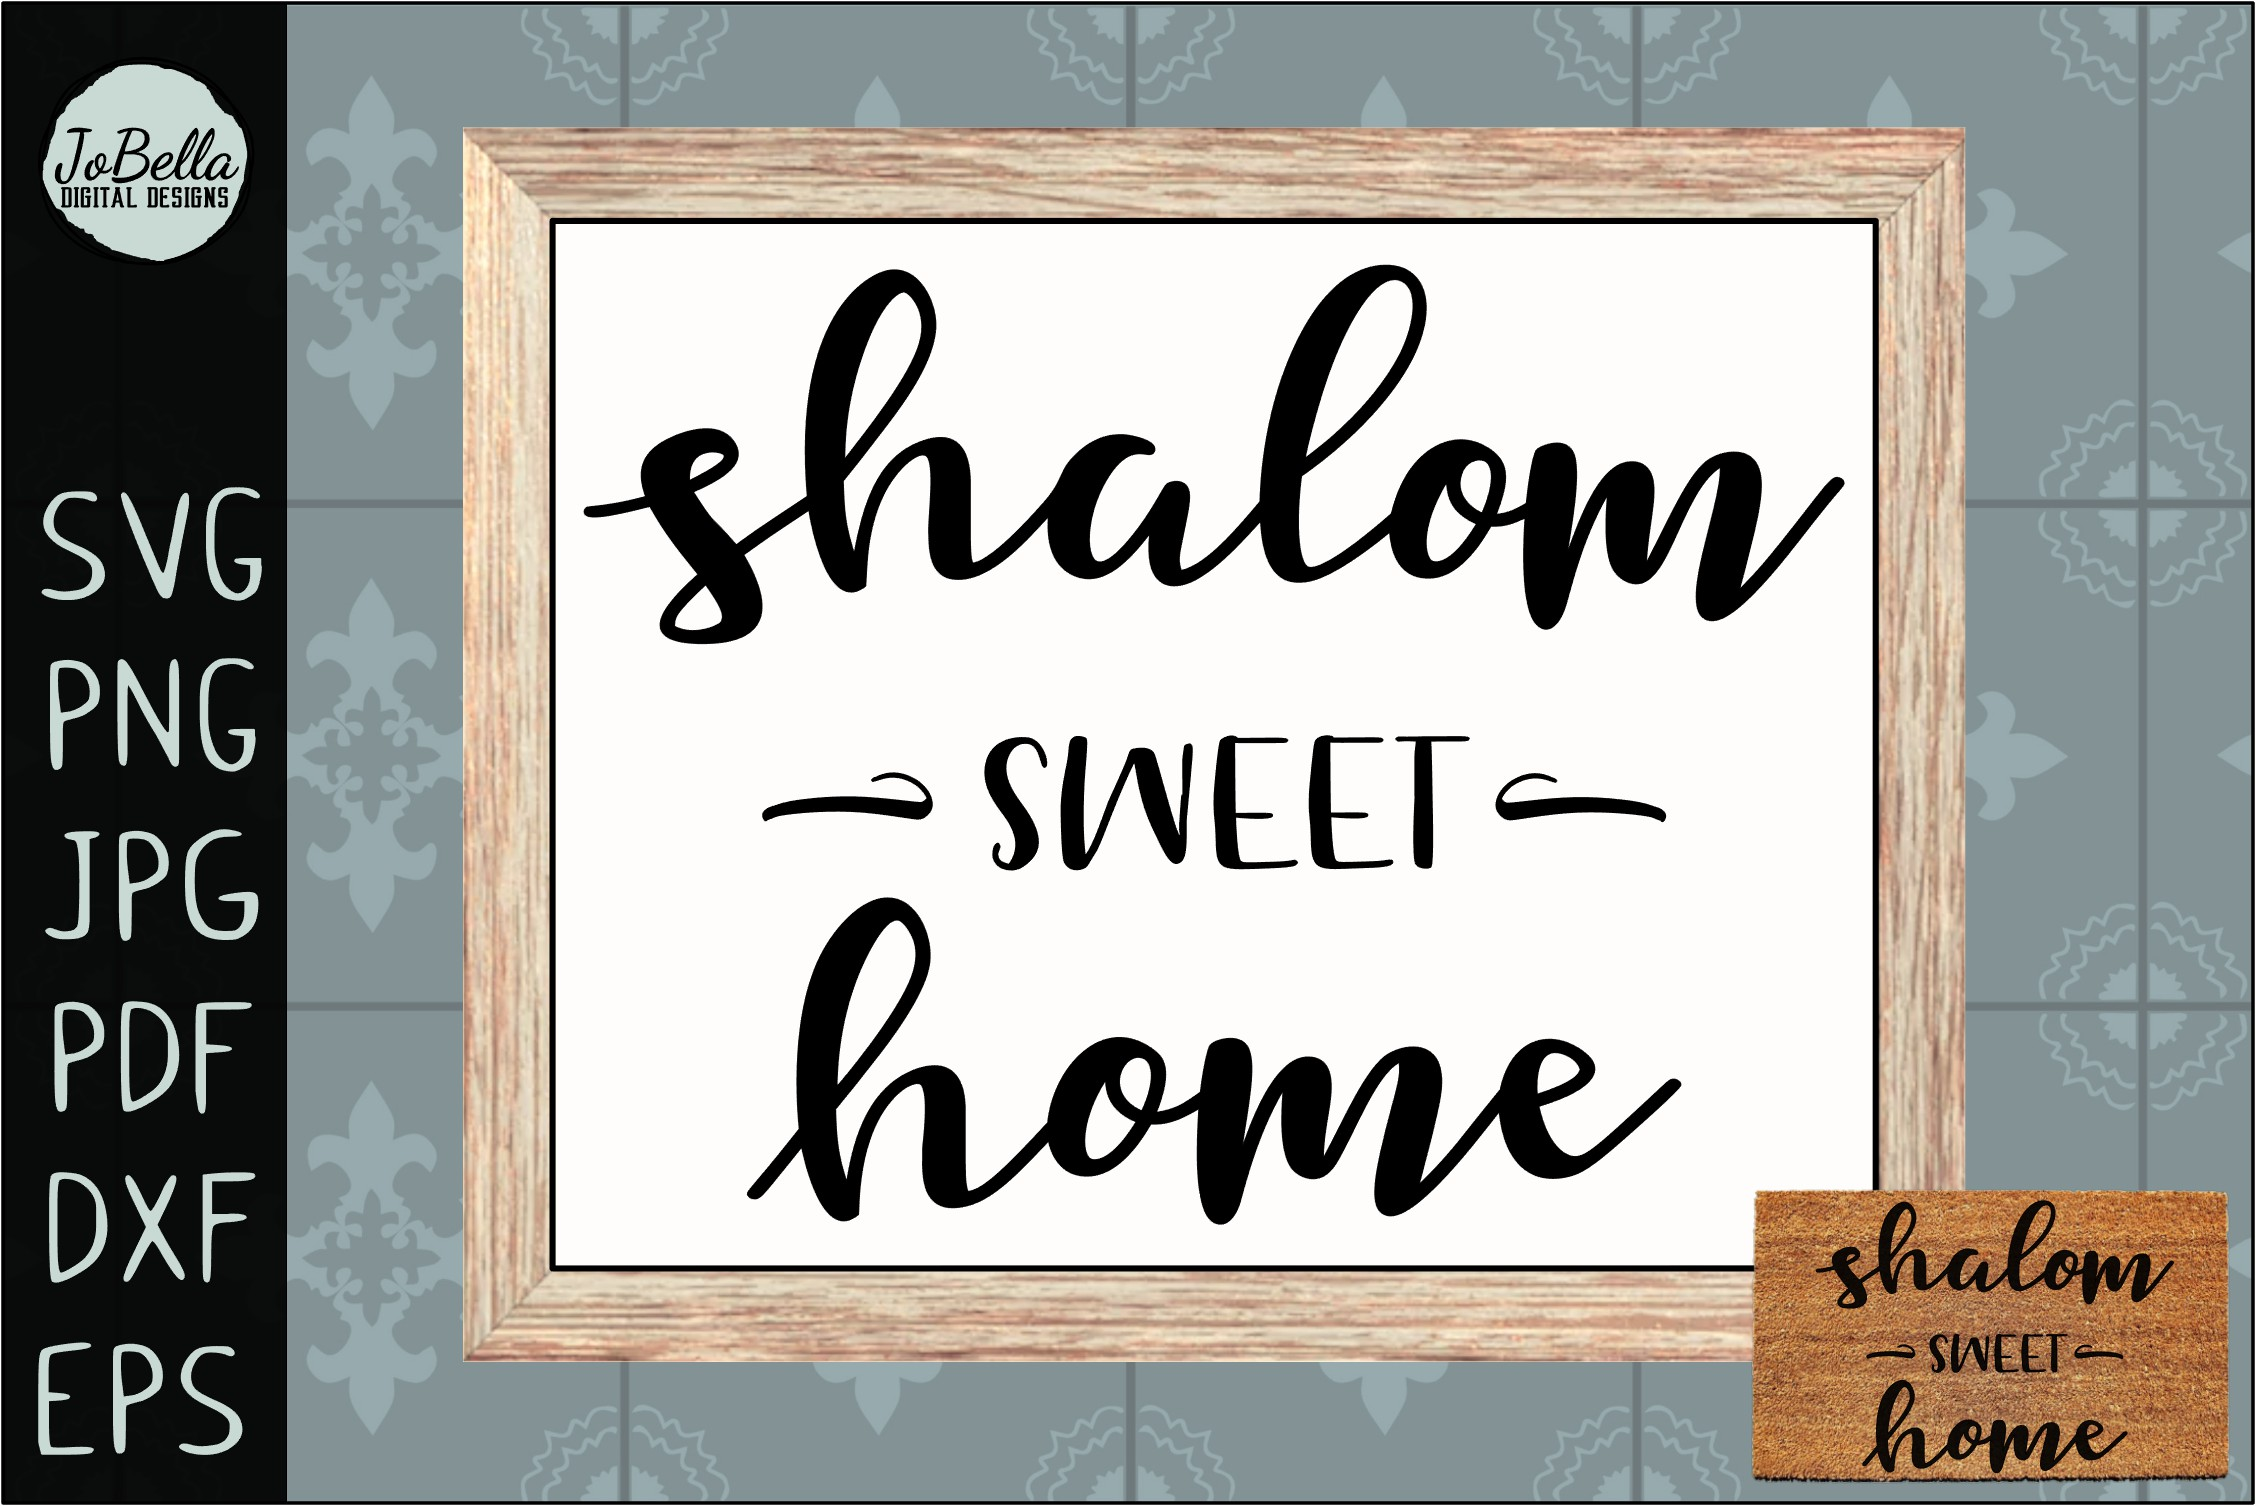 Shalom Sweet Home SVG, Printable and Sublimation PNG example image 1